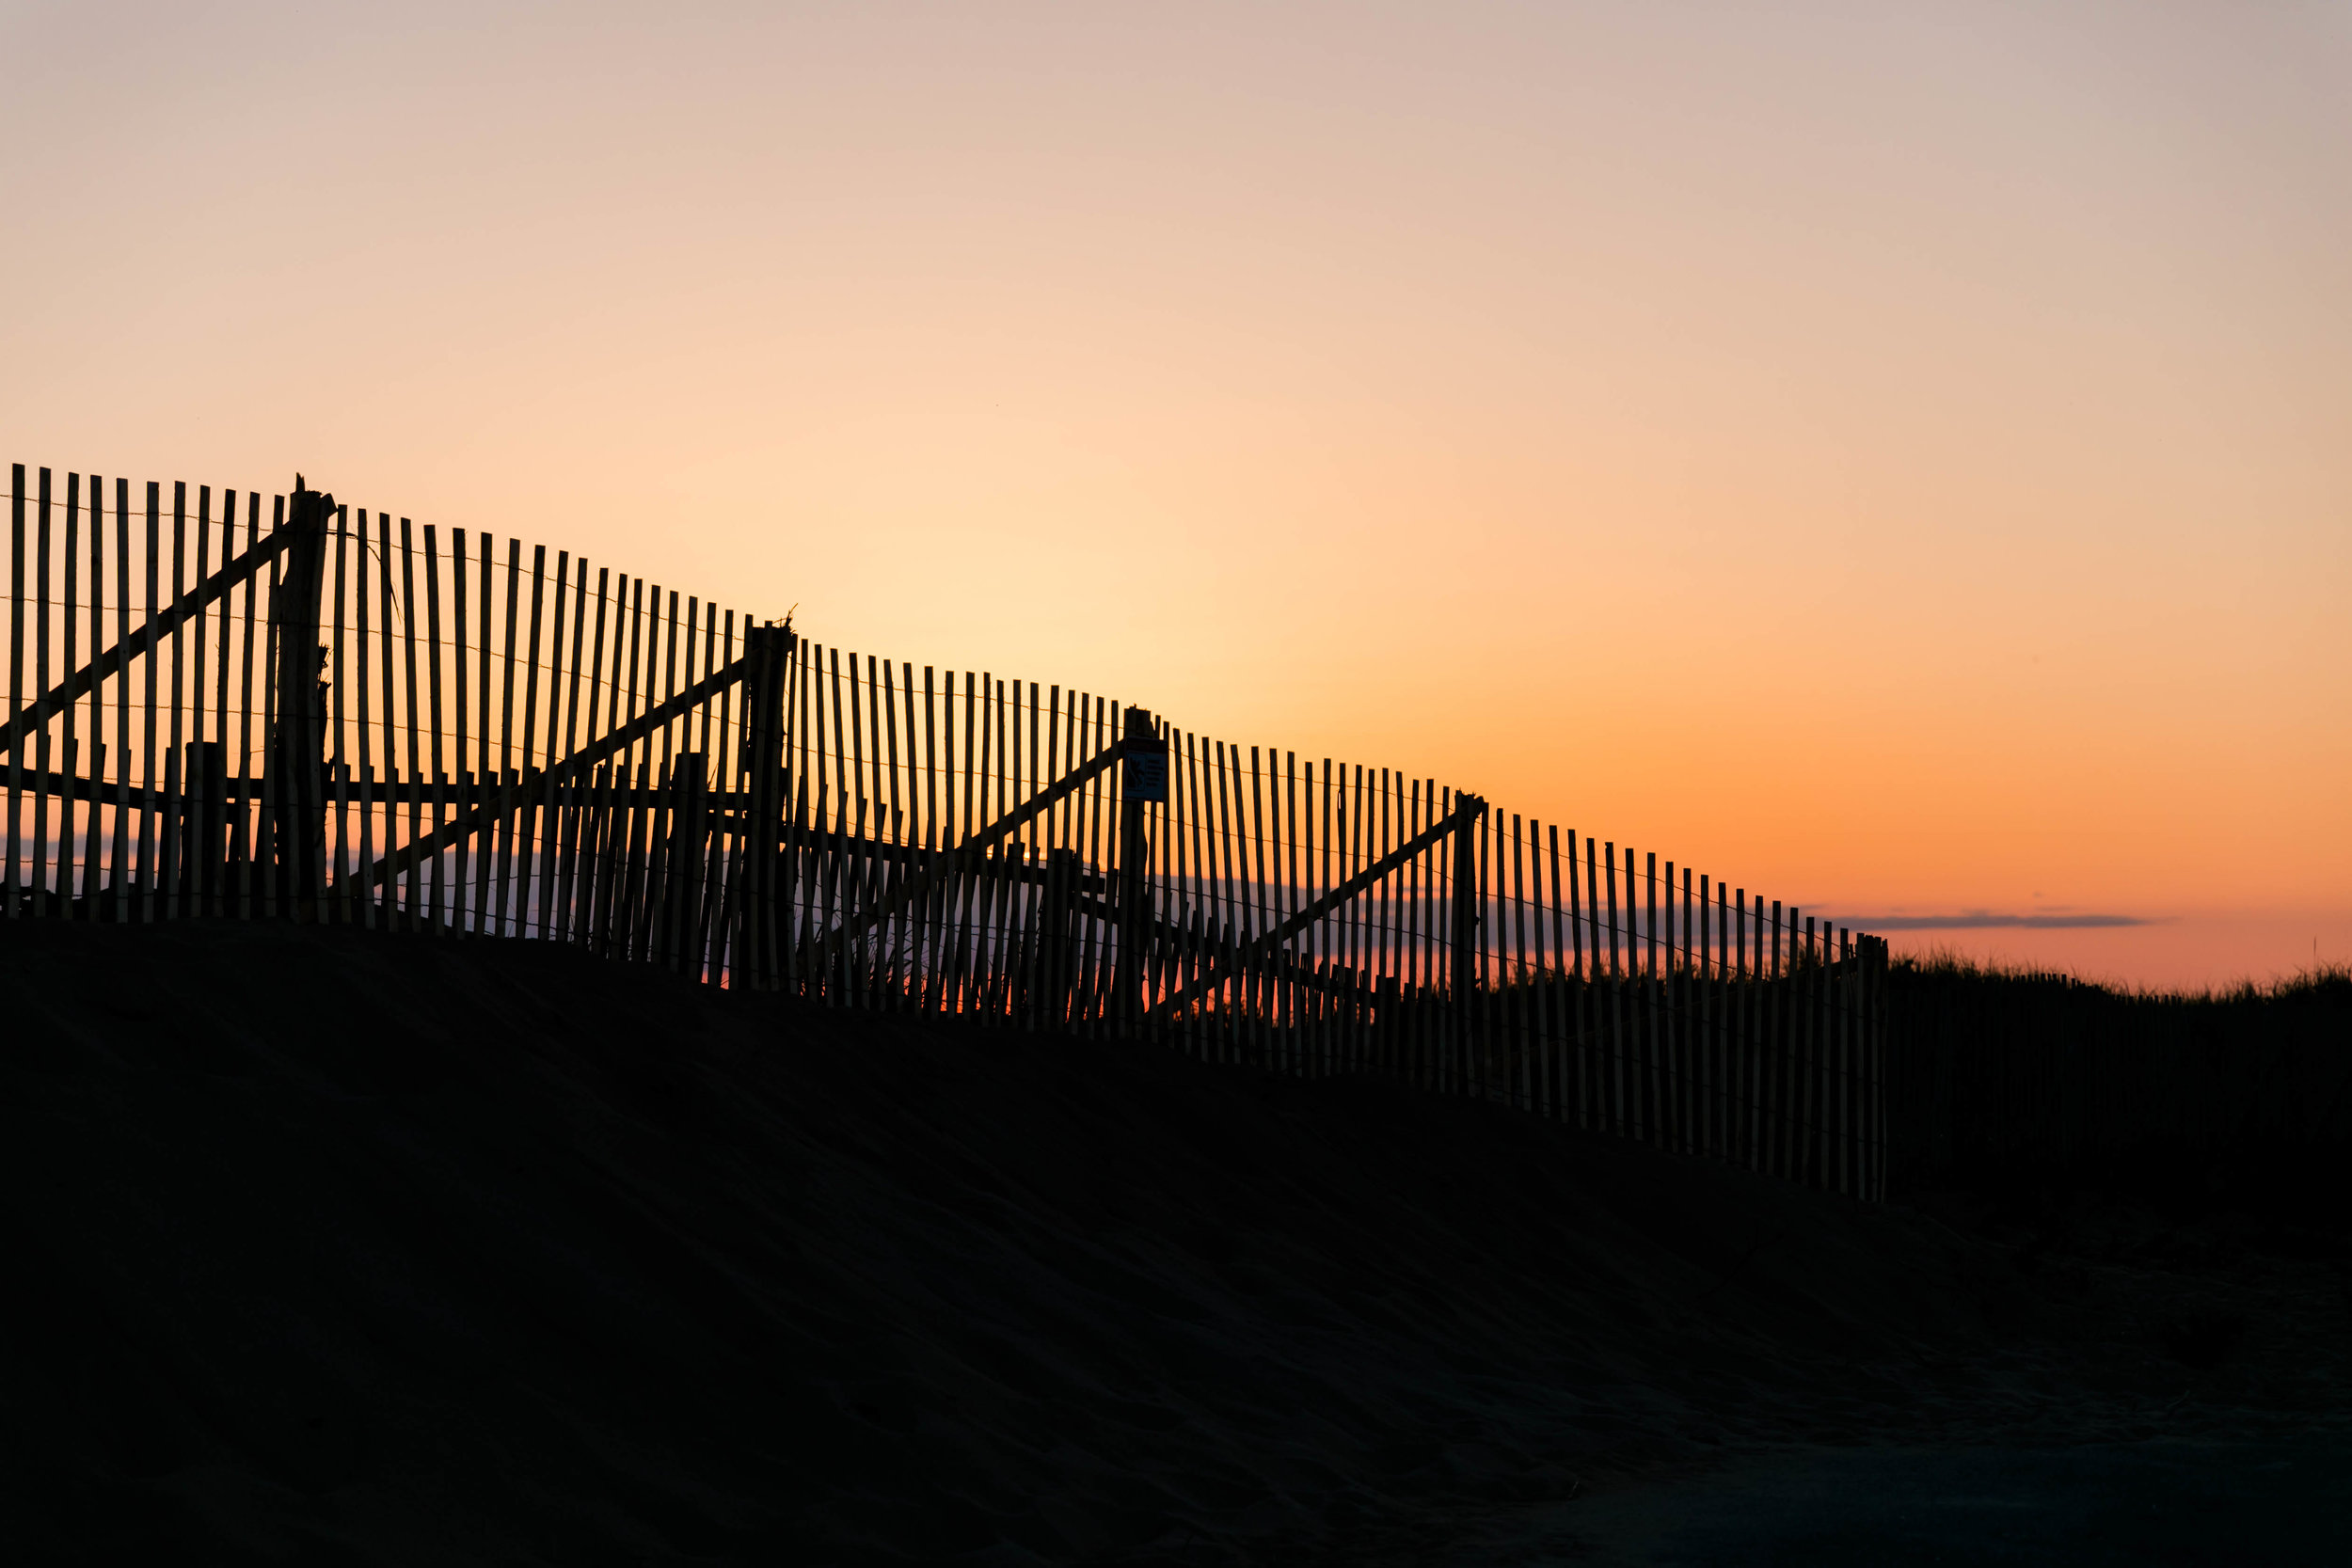 Sun setting over a fence in Provincetown